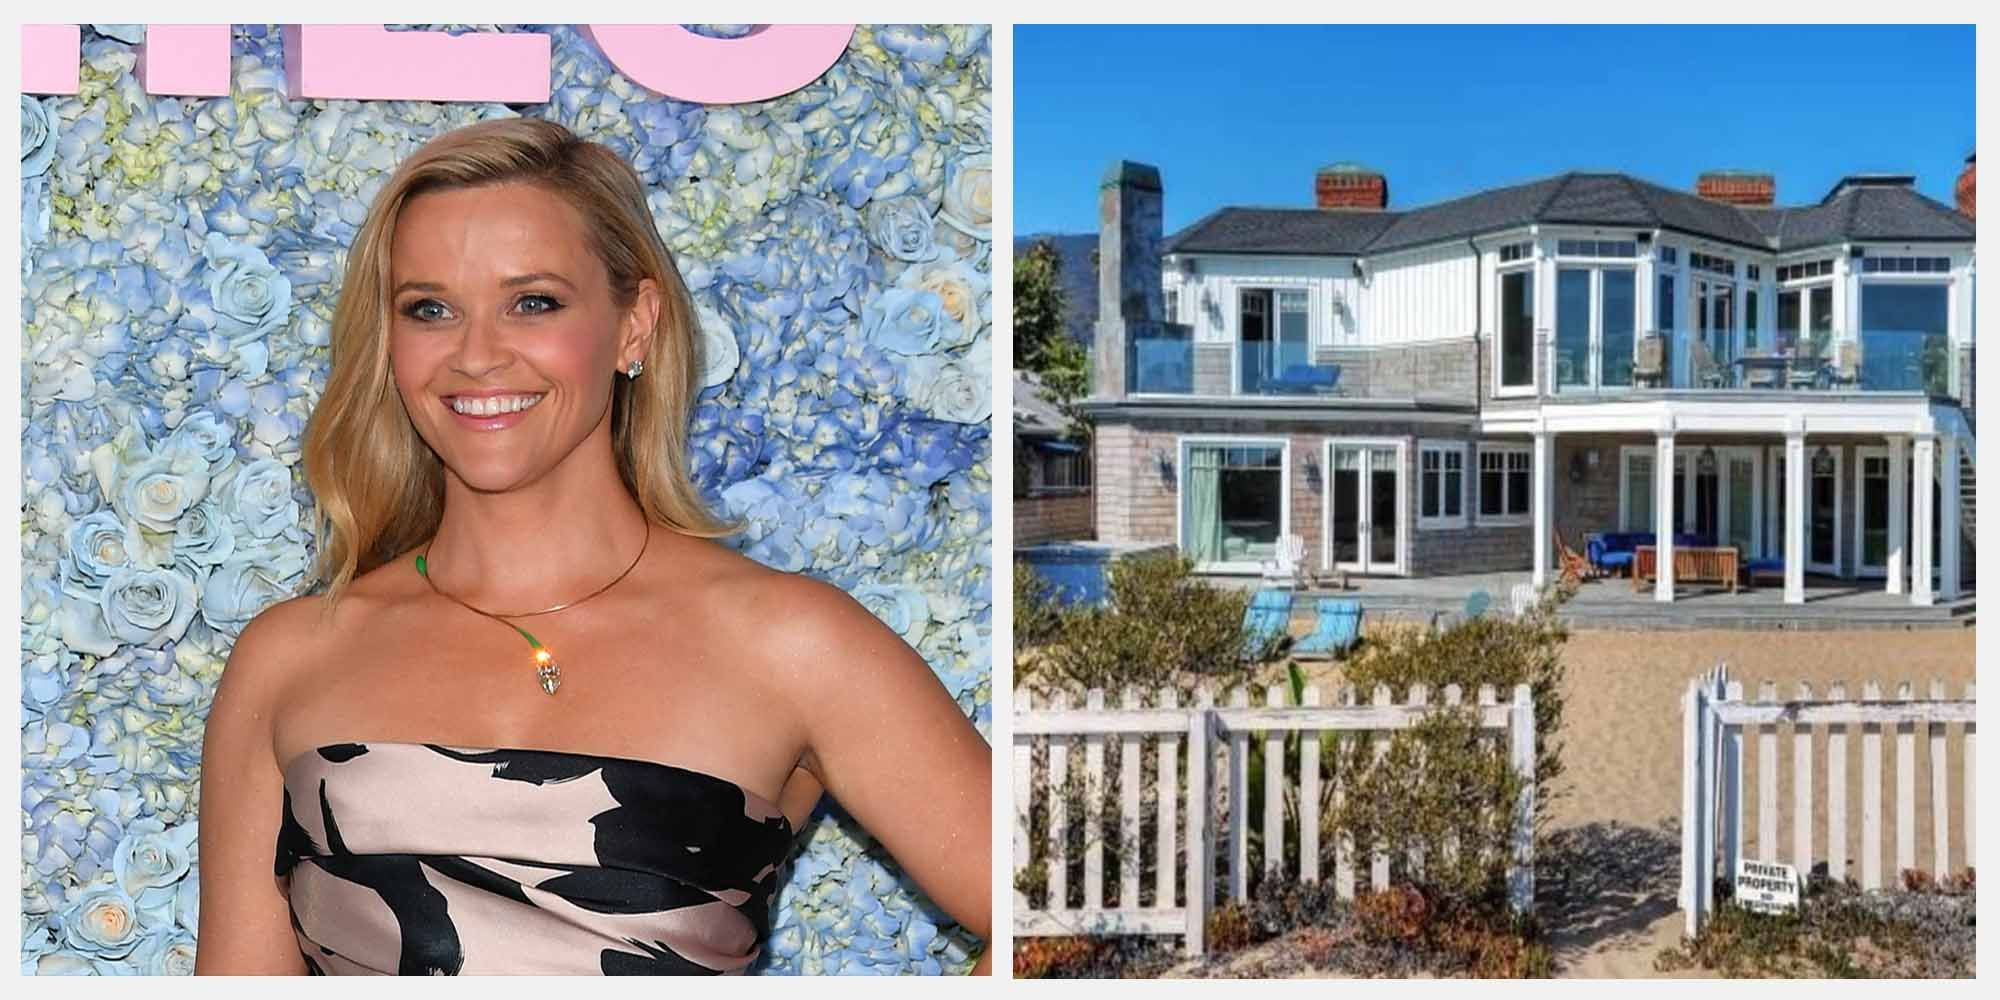 Reese Witherspoon's Gorgeous Big Little LiesMansion in Malibu is Available to Rent